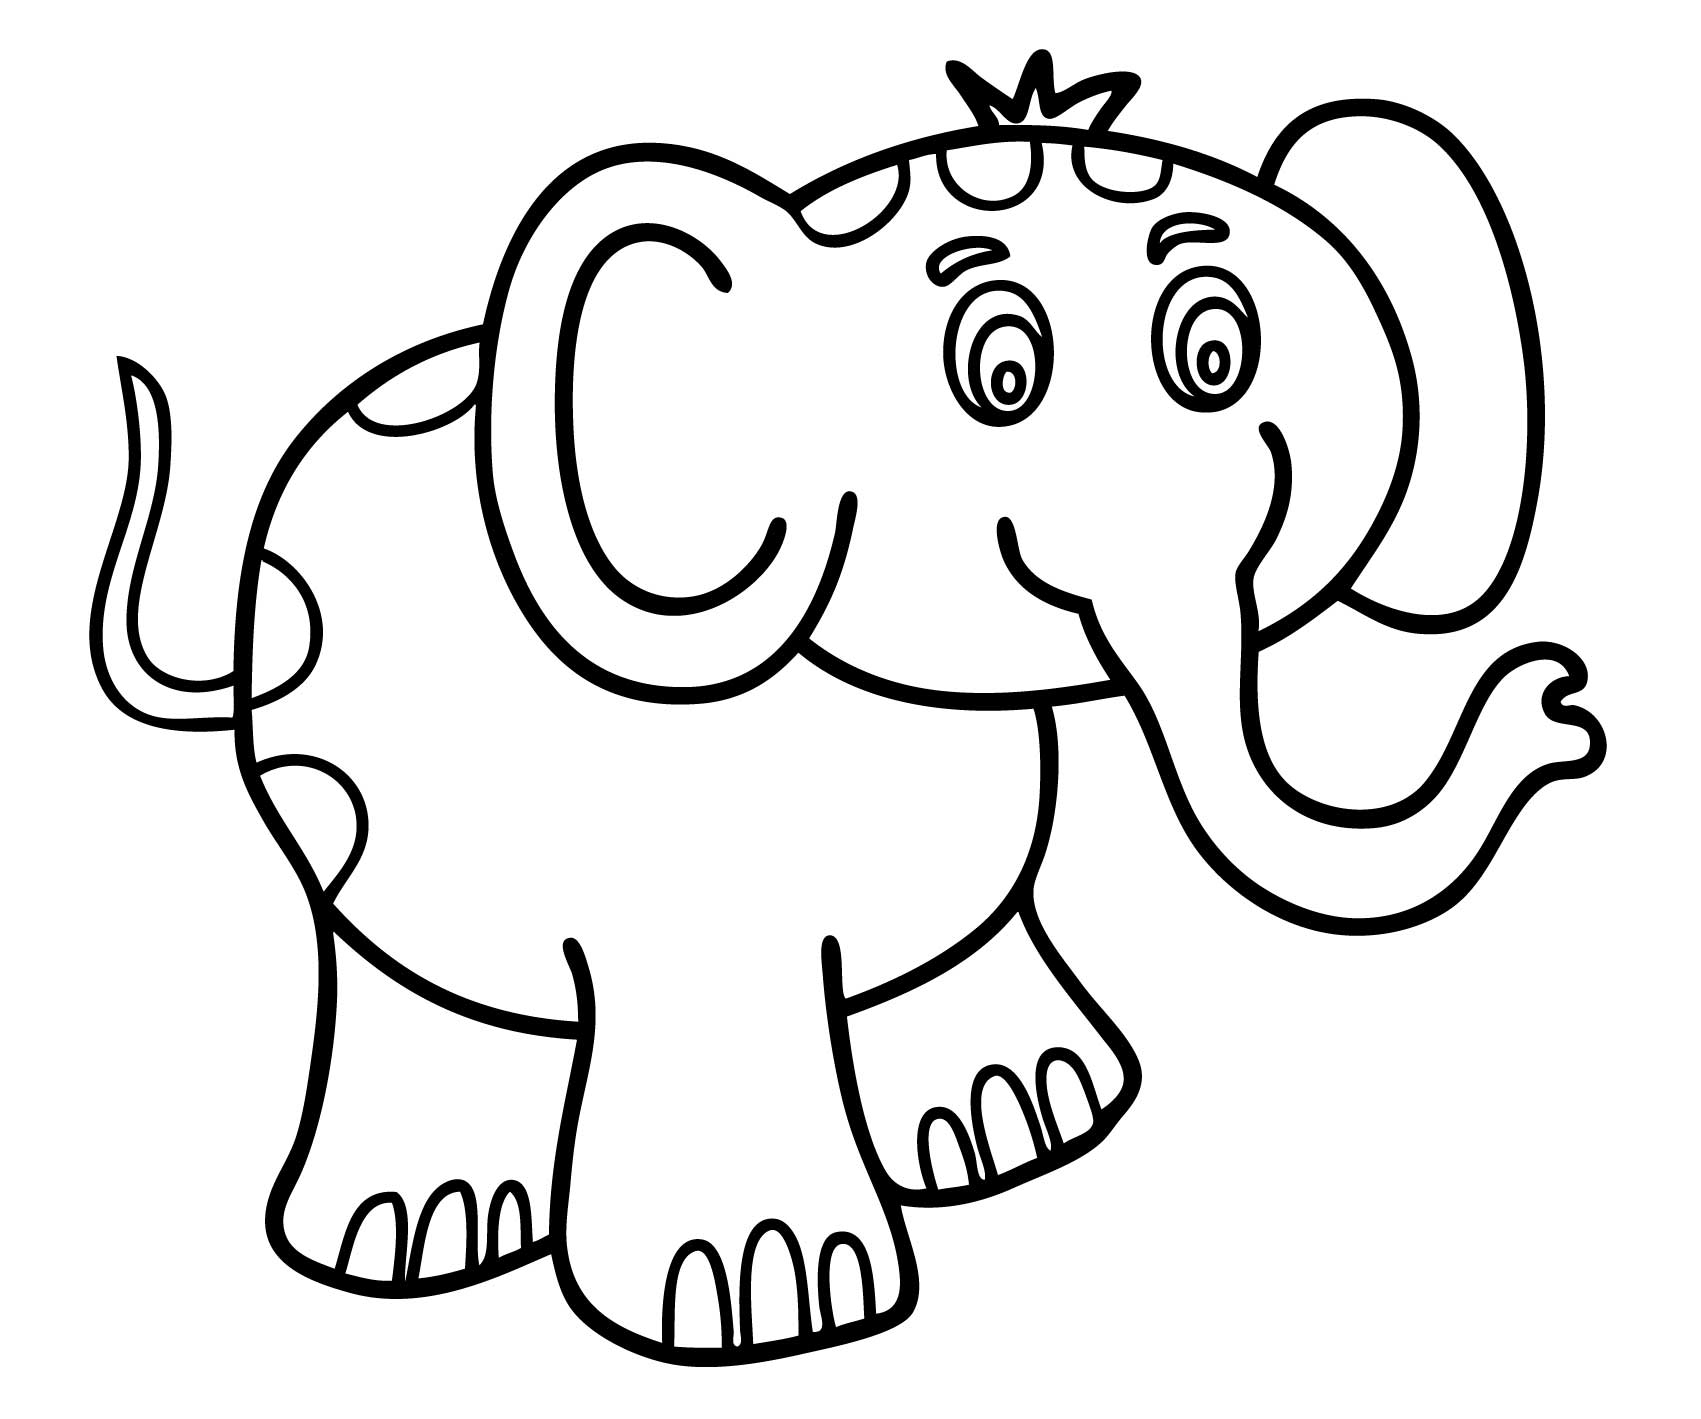 coloring for kids easy easy coloring pages coloringrocks easy for coloring kids